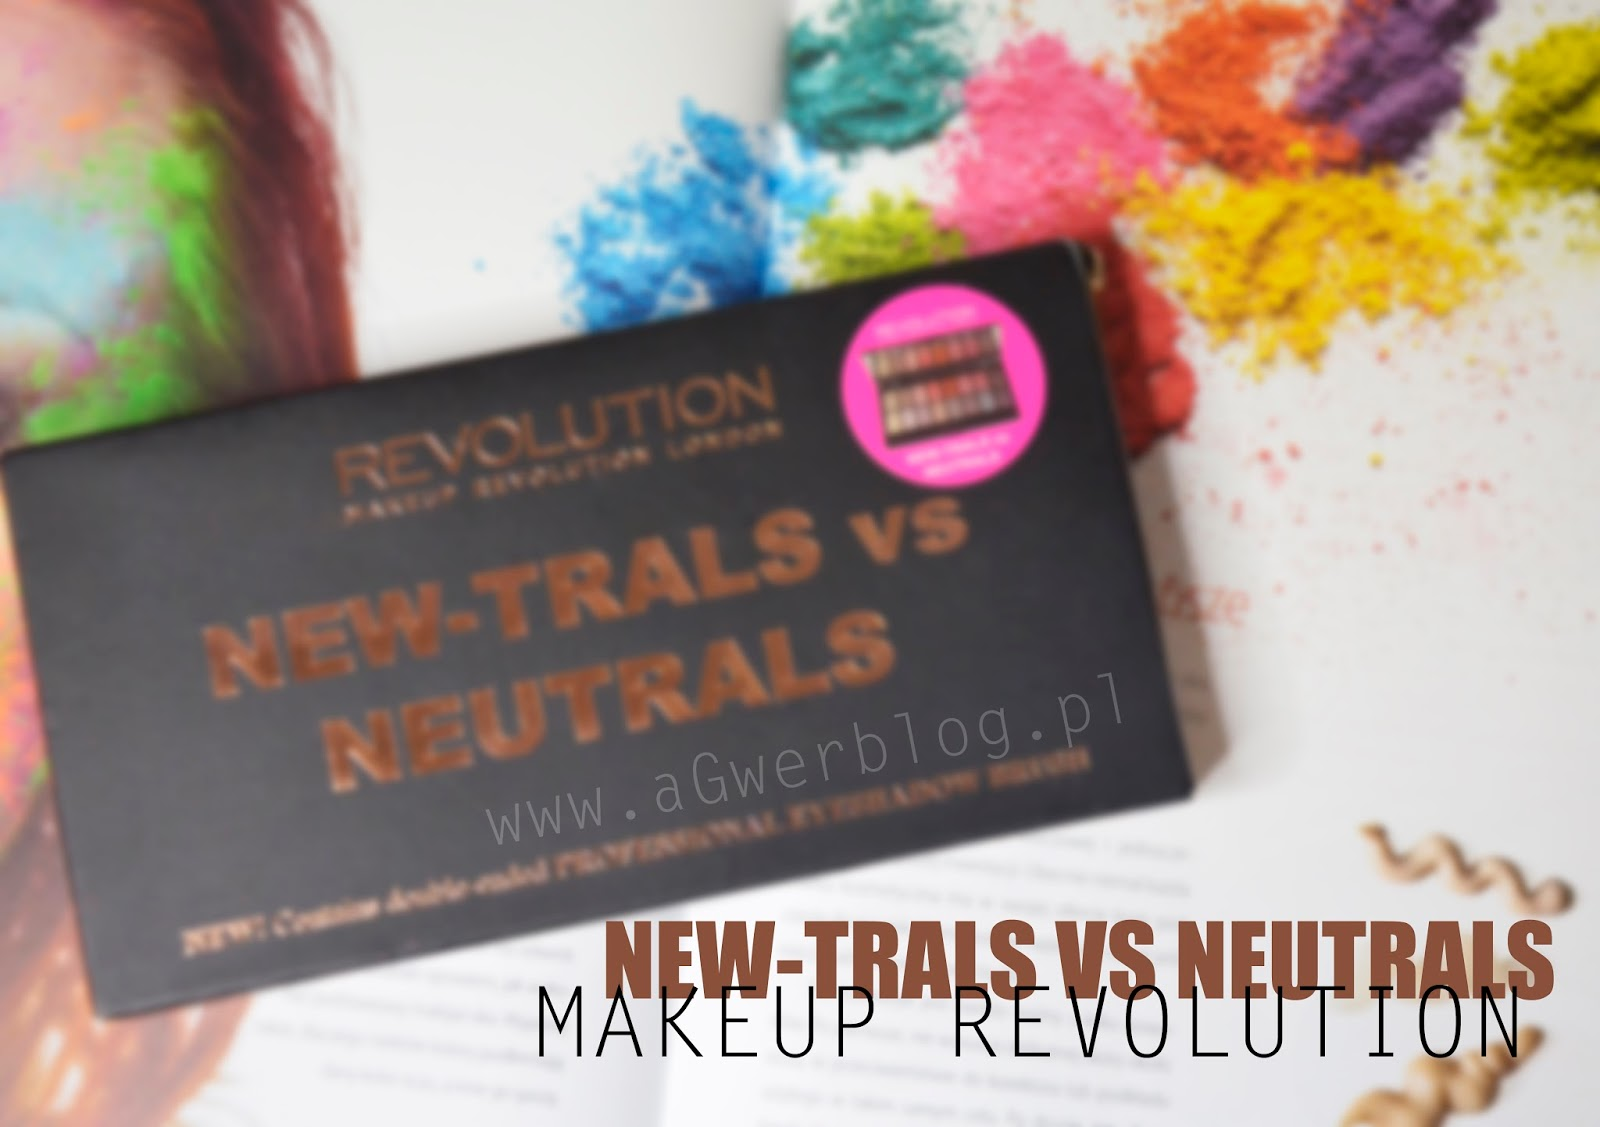 New-trals-vs-neutrals